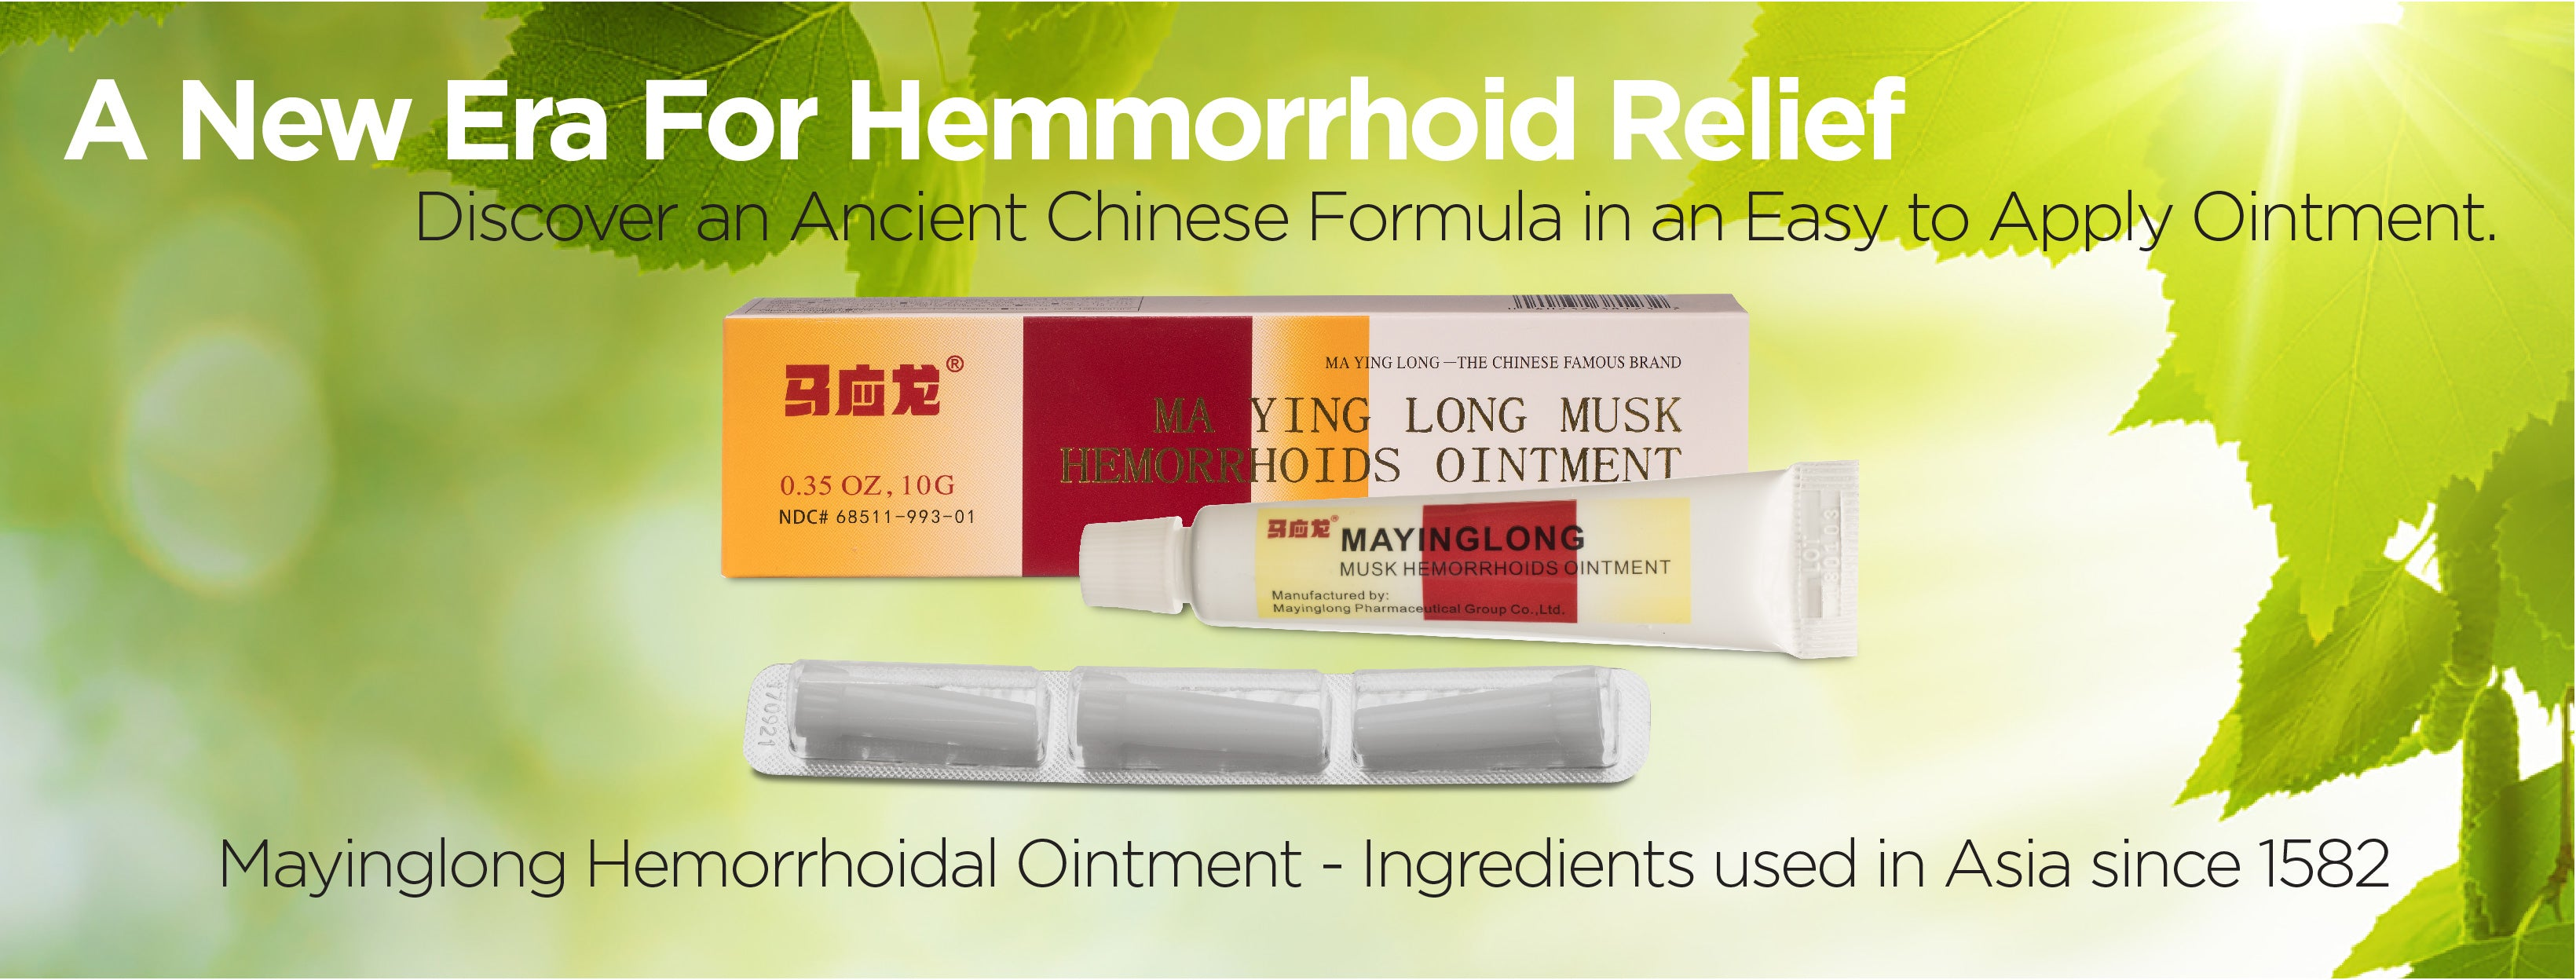 Trifecta Pharmaceuticals USA brings ancient Chinese medicine principles to treatment of hemorrhoids